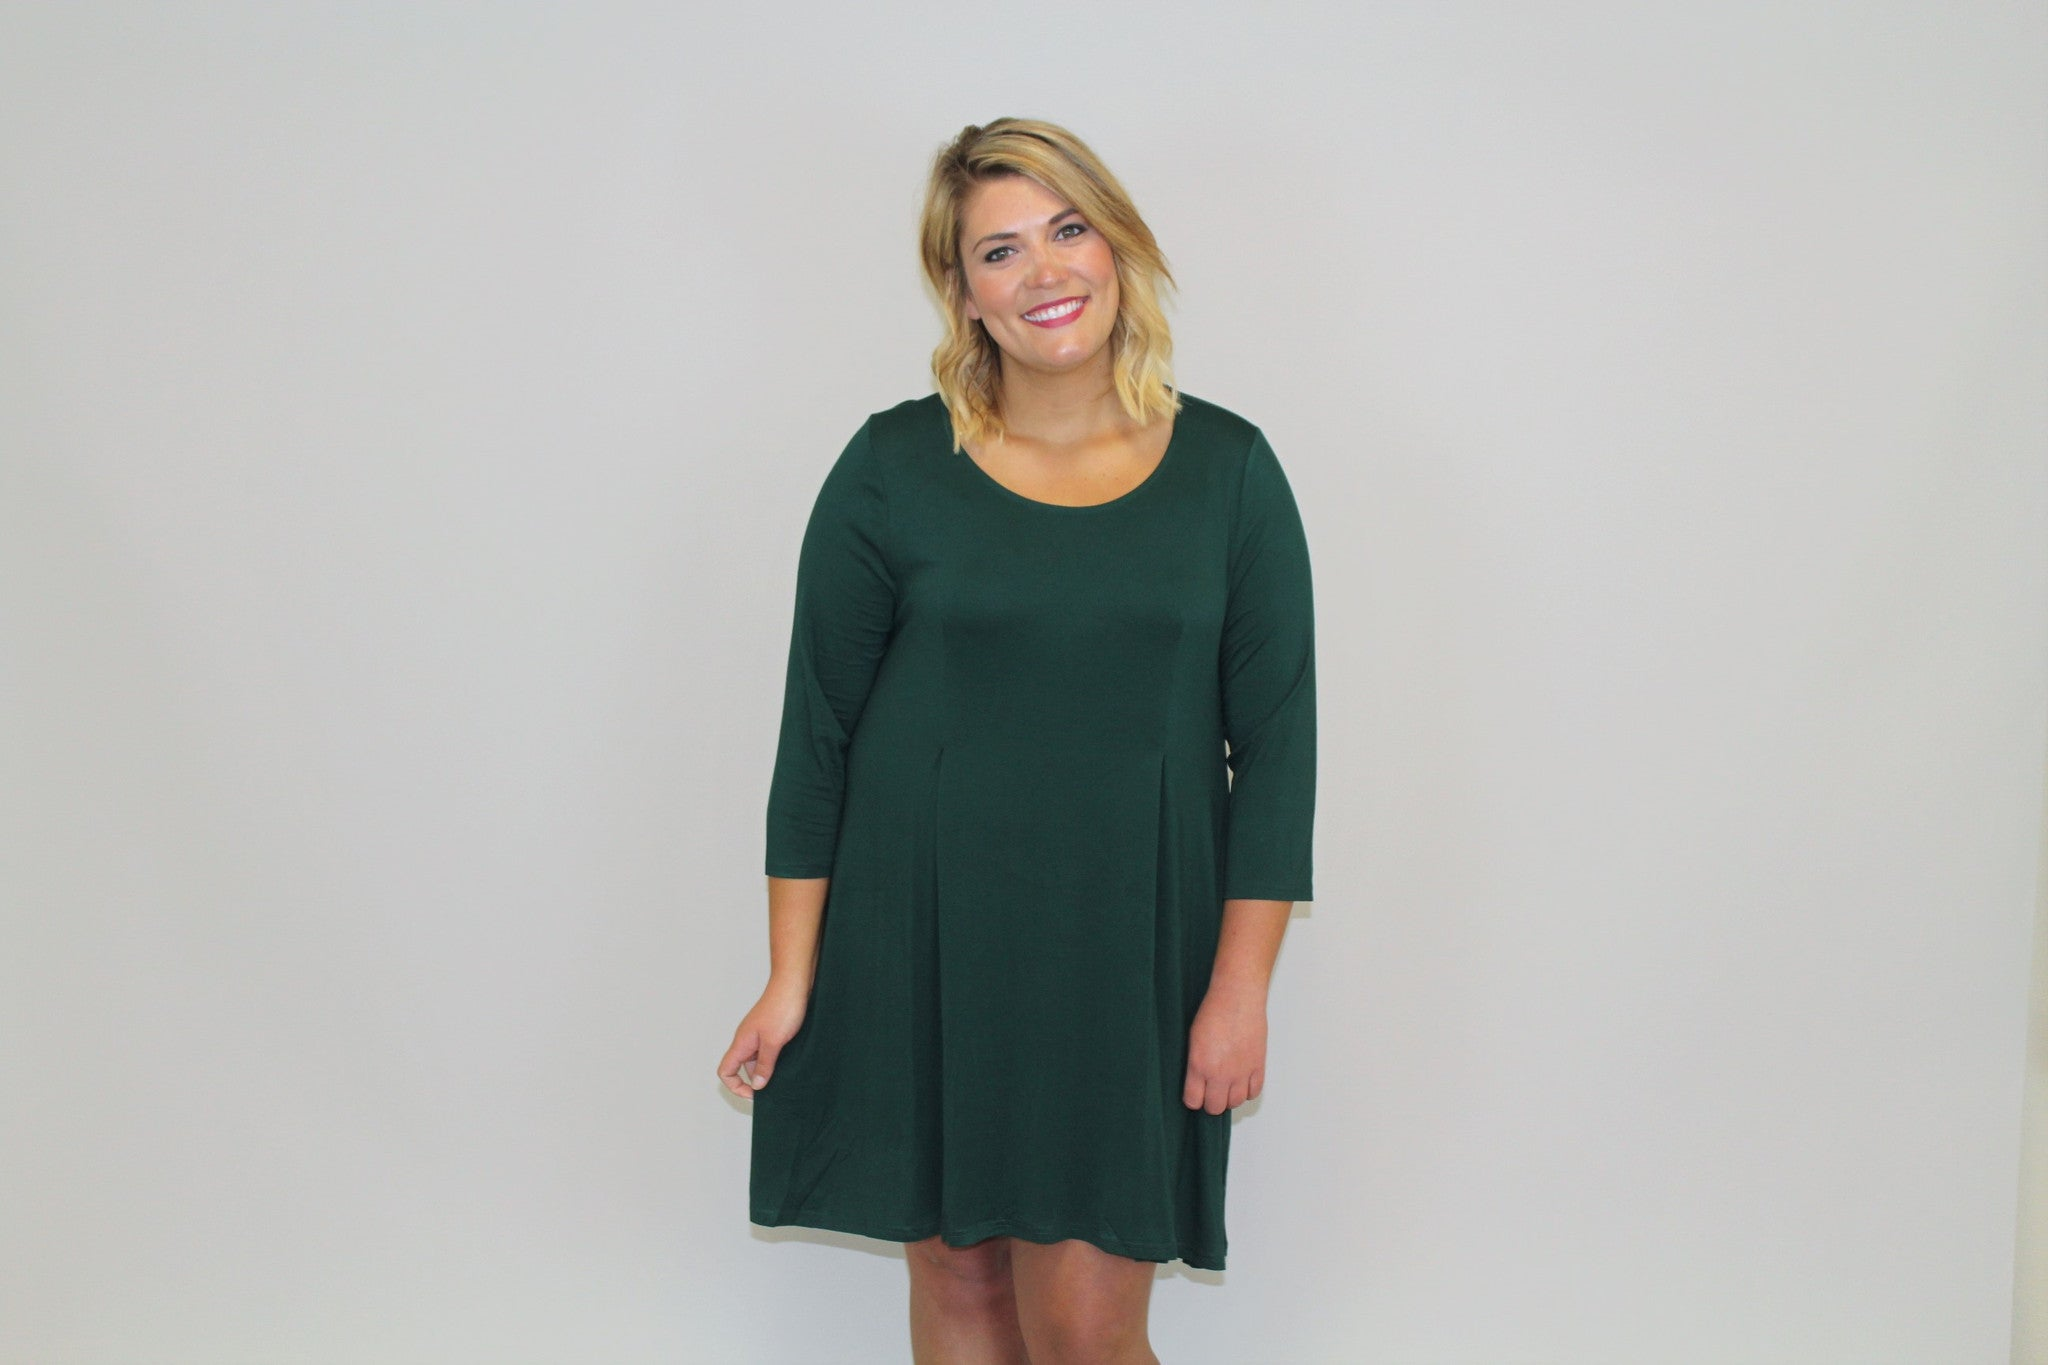 Green 3/4 Slv. Dress - Plus Size